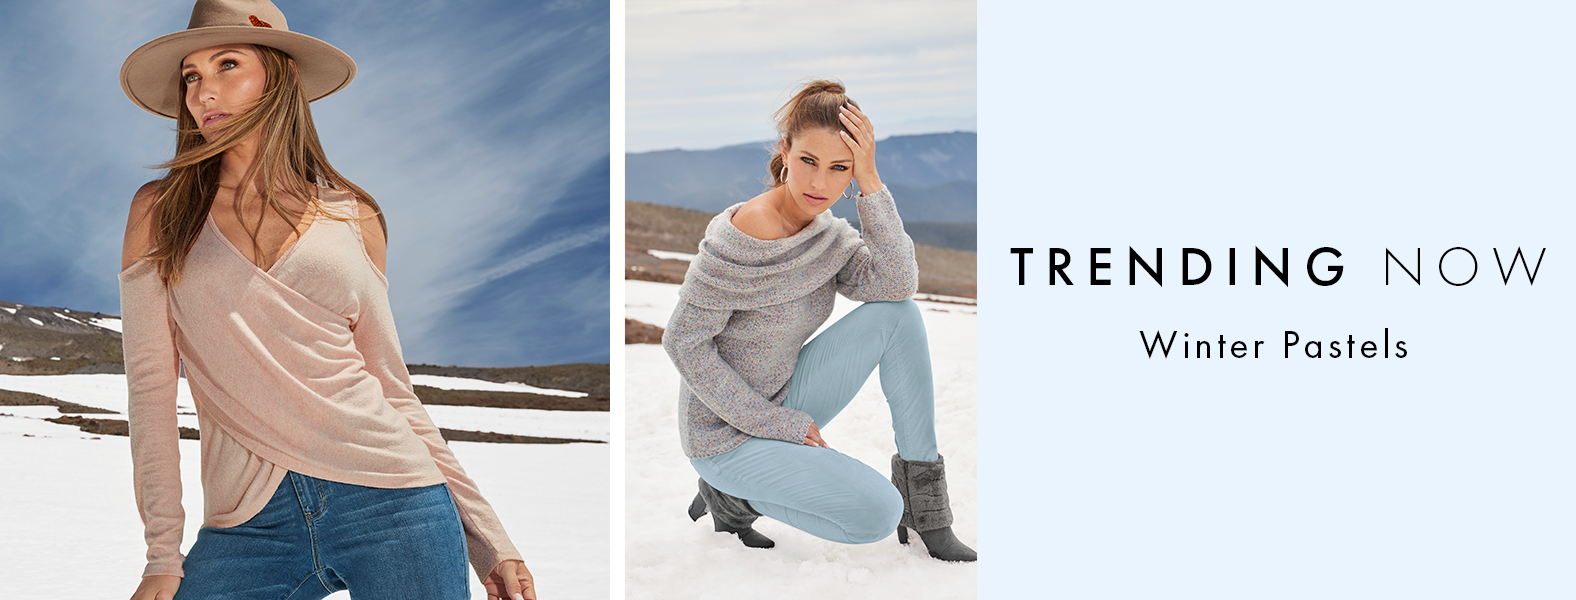 left model wearing a pale pink surplice cold-shoulder long-sleeve top, jeans, and beige hat. right model wearing a gray marled off-the-shoulder sweater, pale blue velvet pants, and gray faux-fur booties. text: trending now. winter pastels.